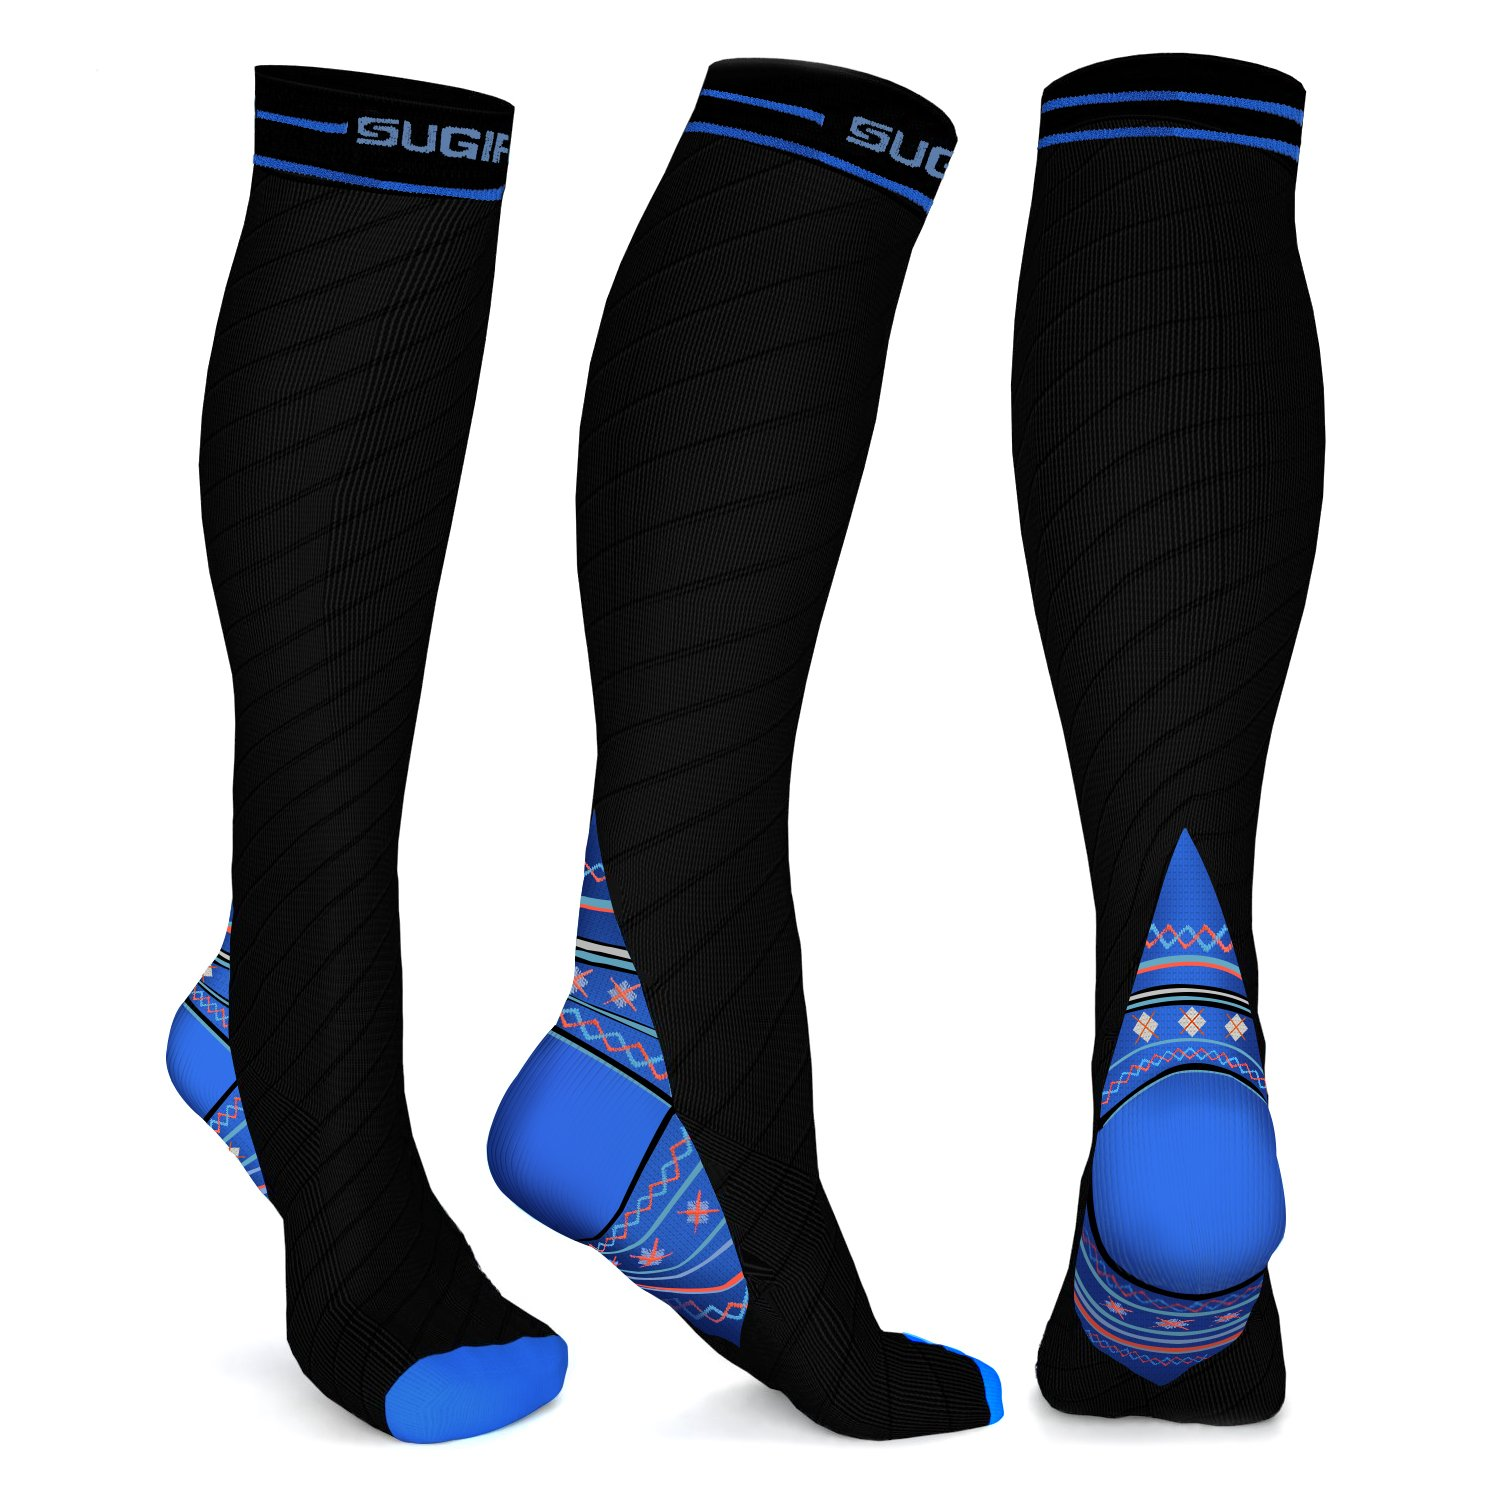 a57f28d9e2 GRADUATED COMPRESSION SOCKS (20-30mmHg) FOR VARICOSE VEINS, THROMBOSIS,  LYMPHEDEMA - Get your blood circulating in style! Great for relief of varicose  veins ...